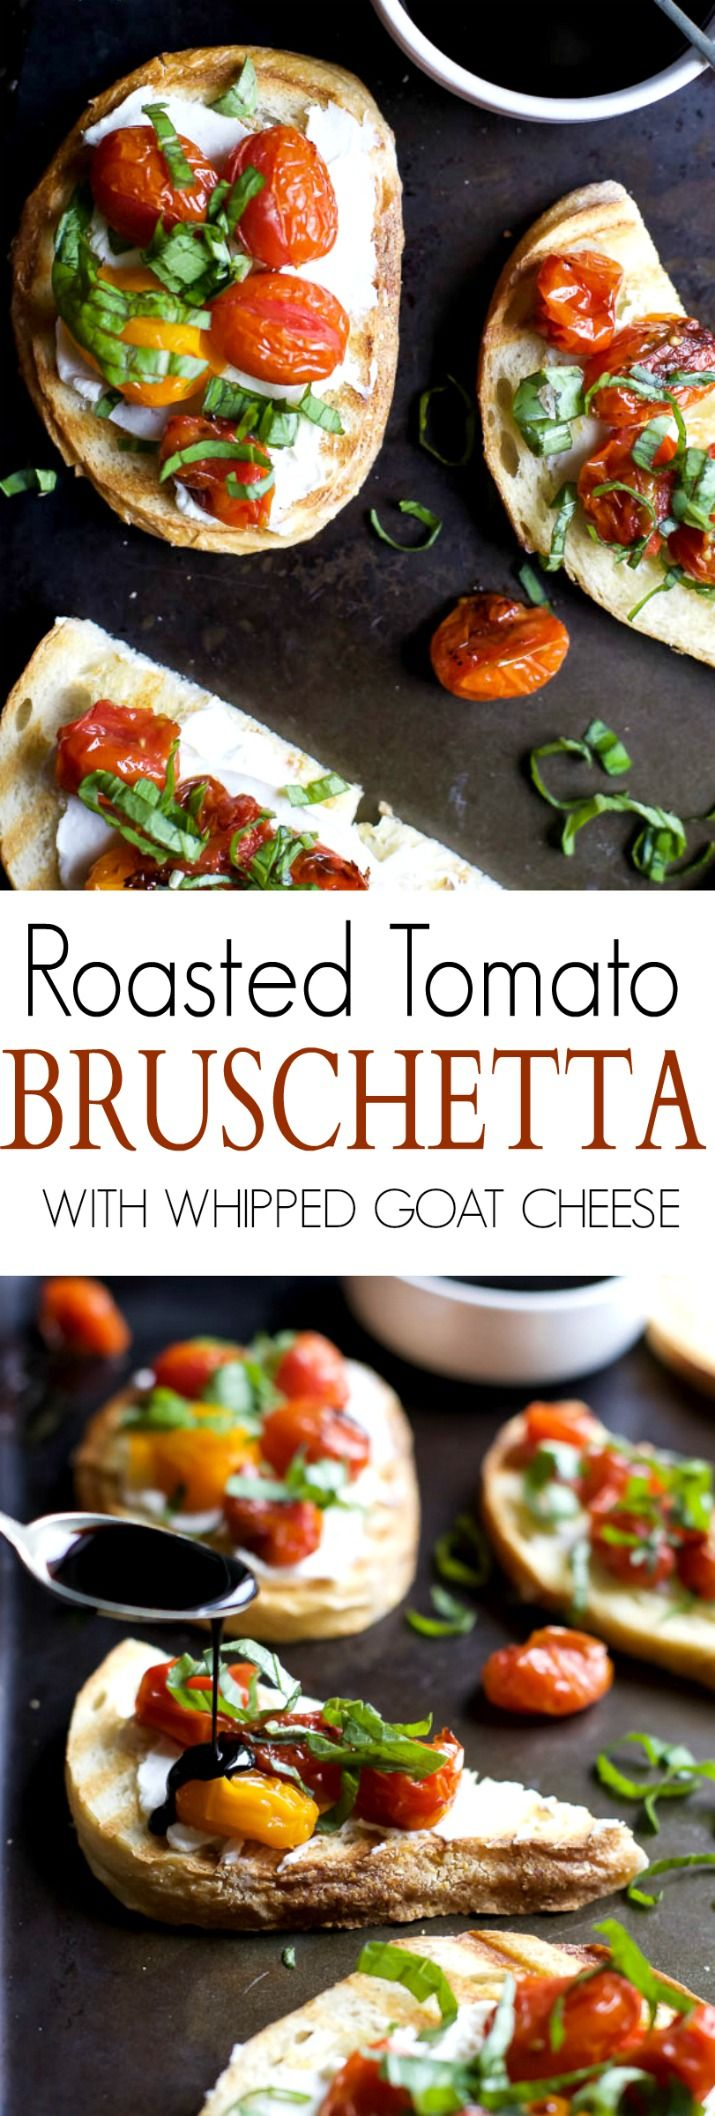 Roasted Tomato Bruschetta with Whipped Goat and a Balsamic Reduction Drizzle…